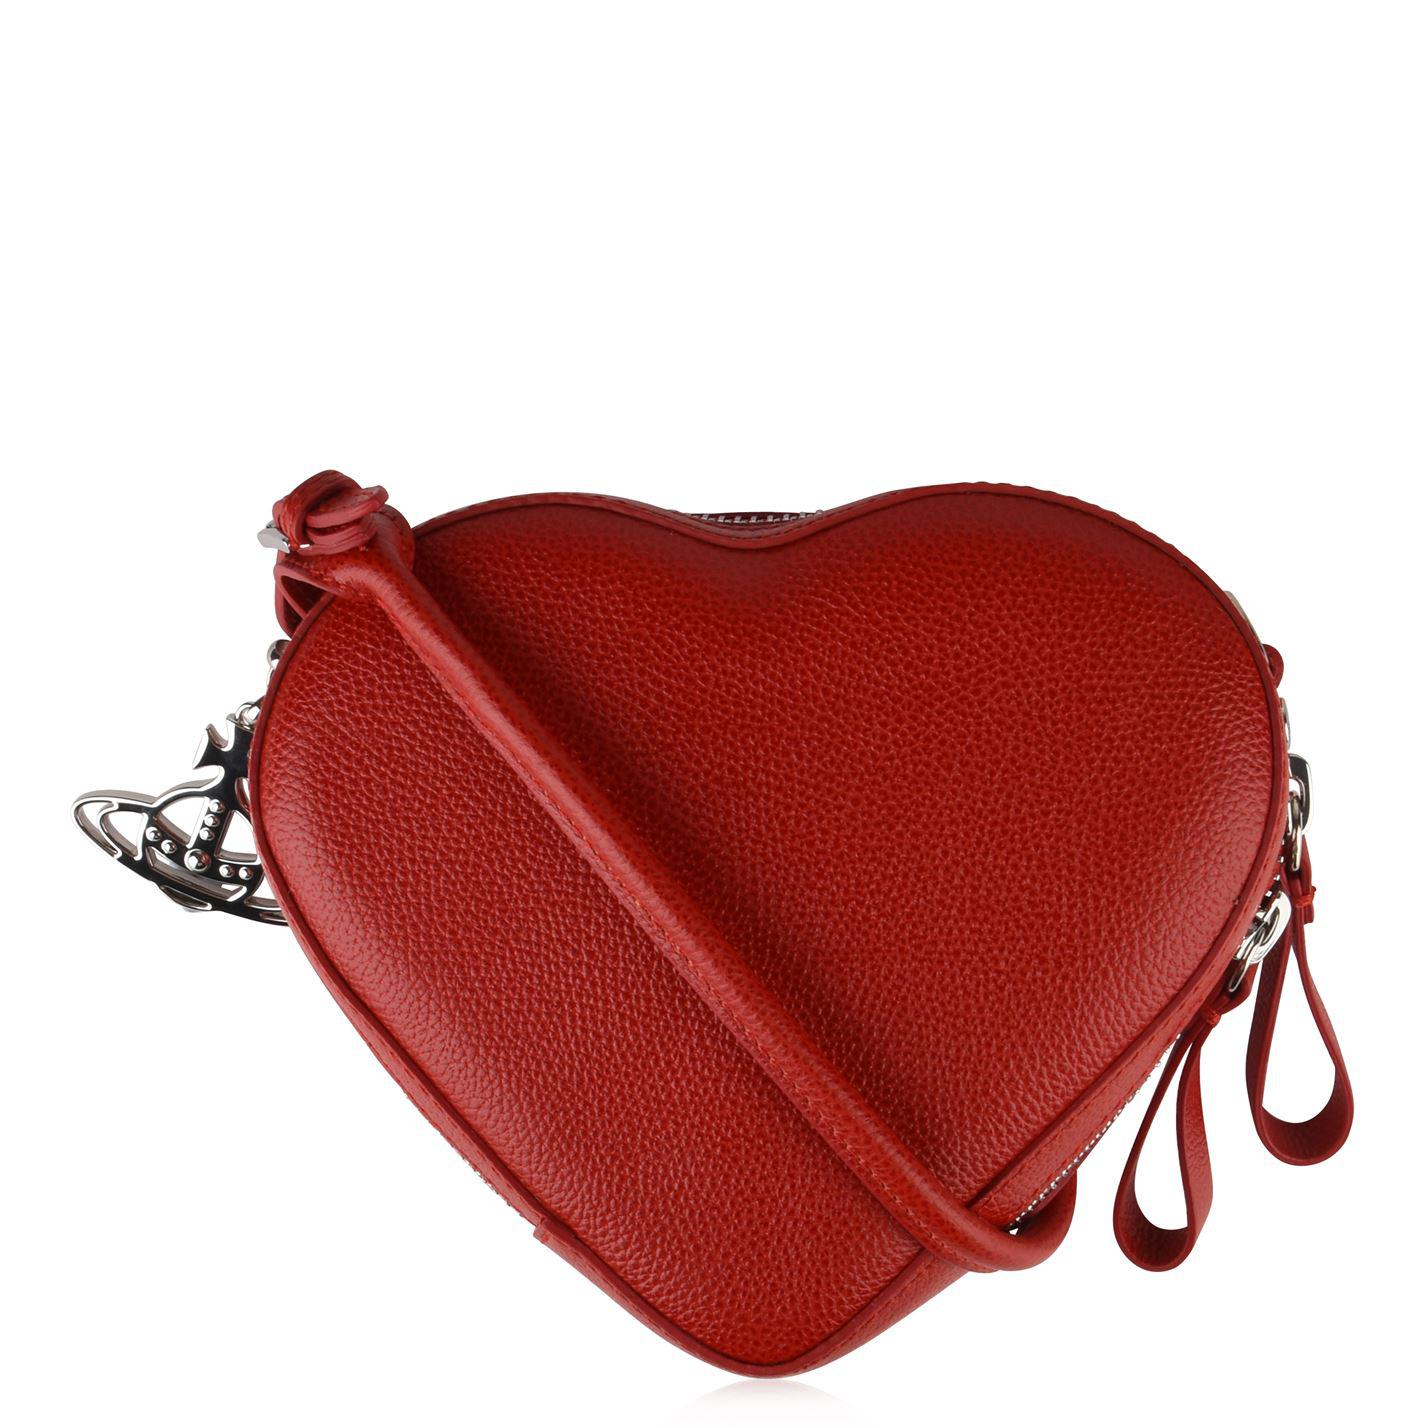 0df7e51e9e1 Vivienne Westwood Johanna Heart Cross Body Bag in Red - Lyst